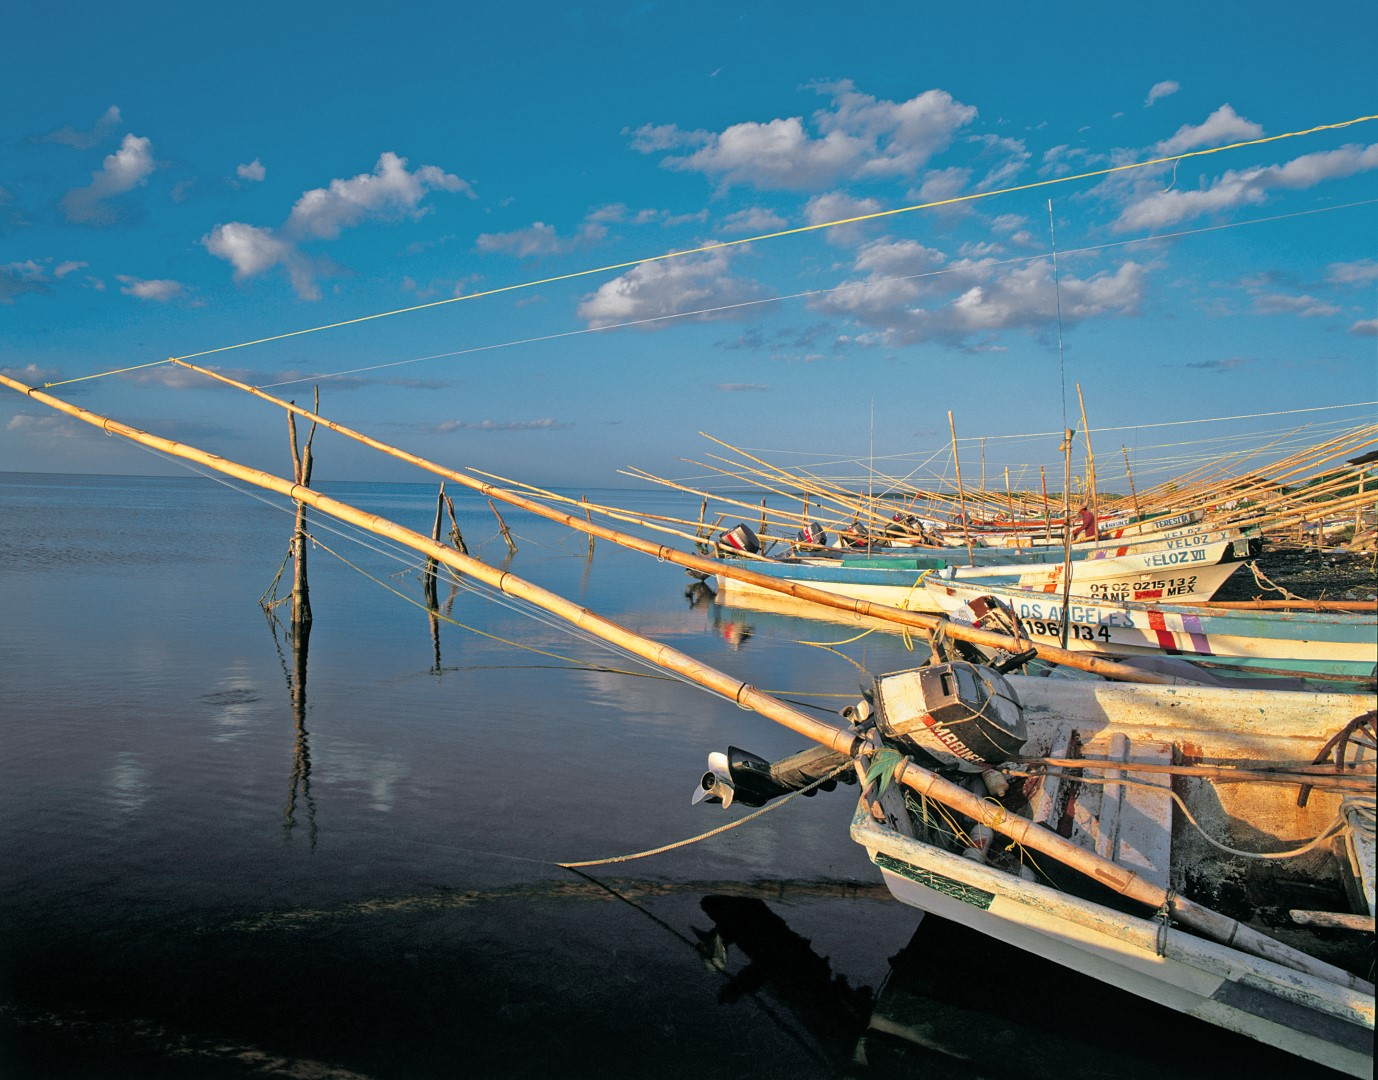 Fishing boats near Campeche Mexico